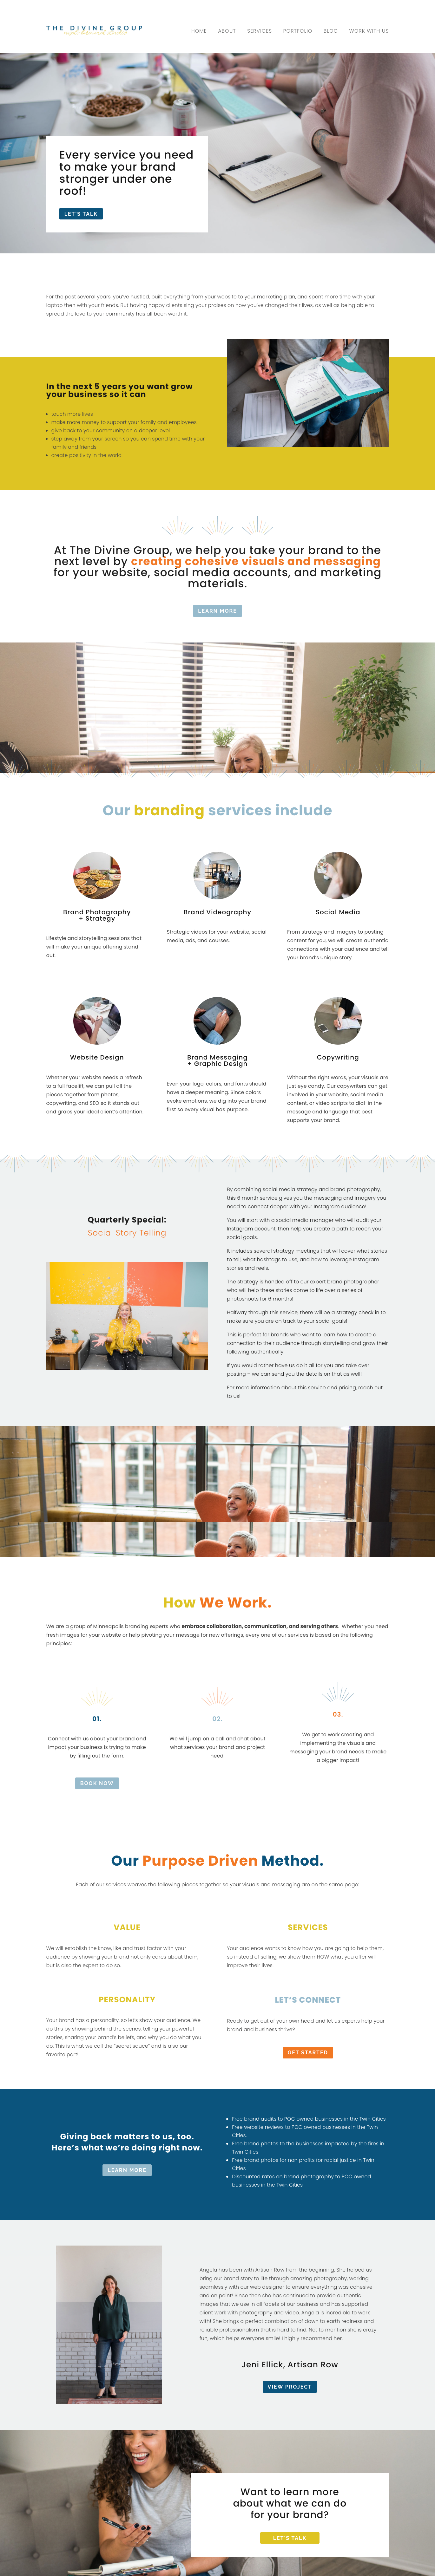 Brand Agency Services Page Website Design